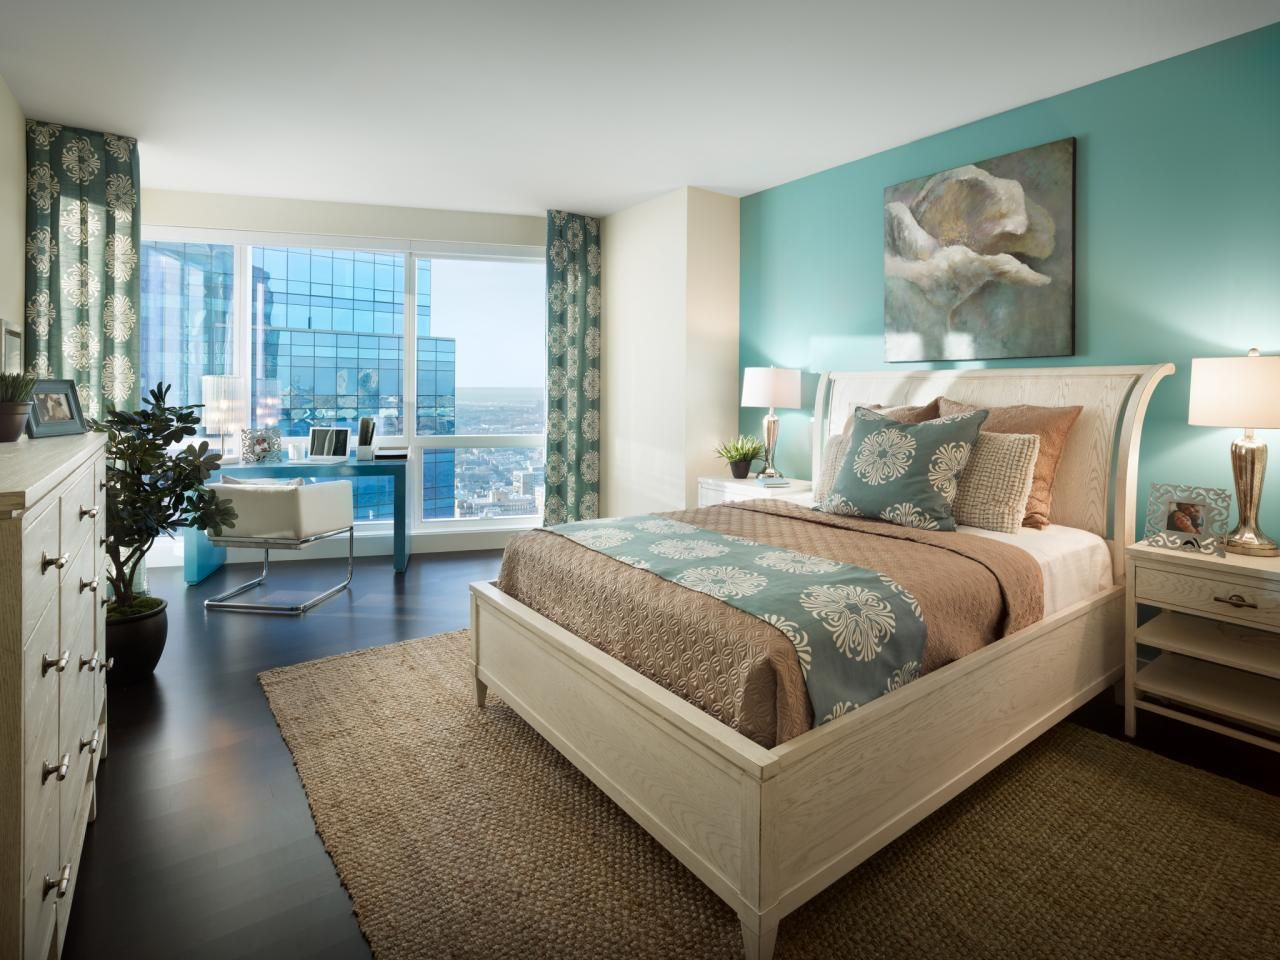 Accent wall paint ideas bedroom  Design Trend Decorating With Blue  Turquoise painting Hgtv and